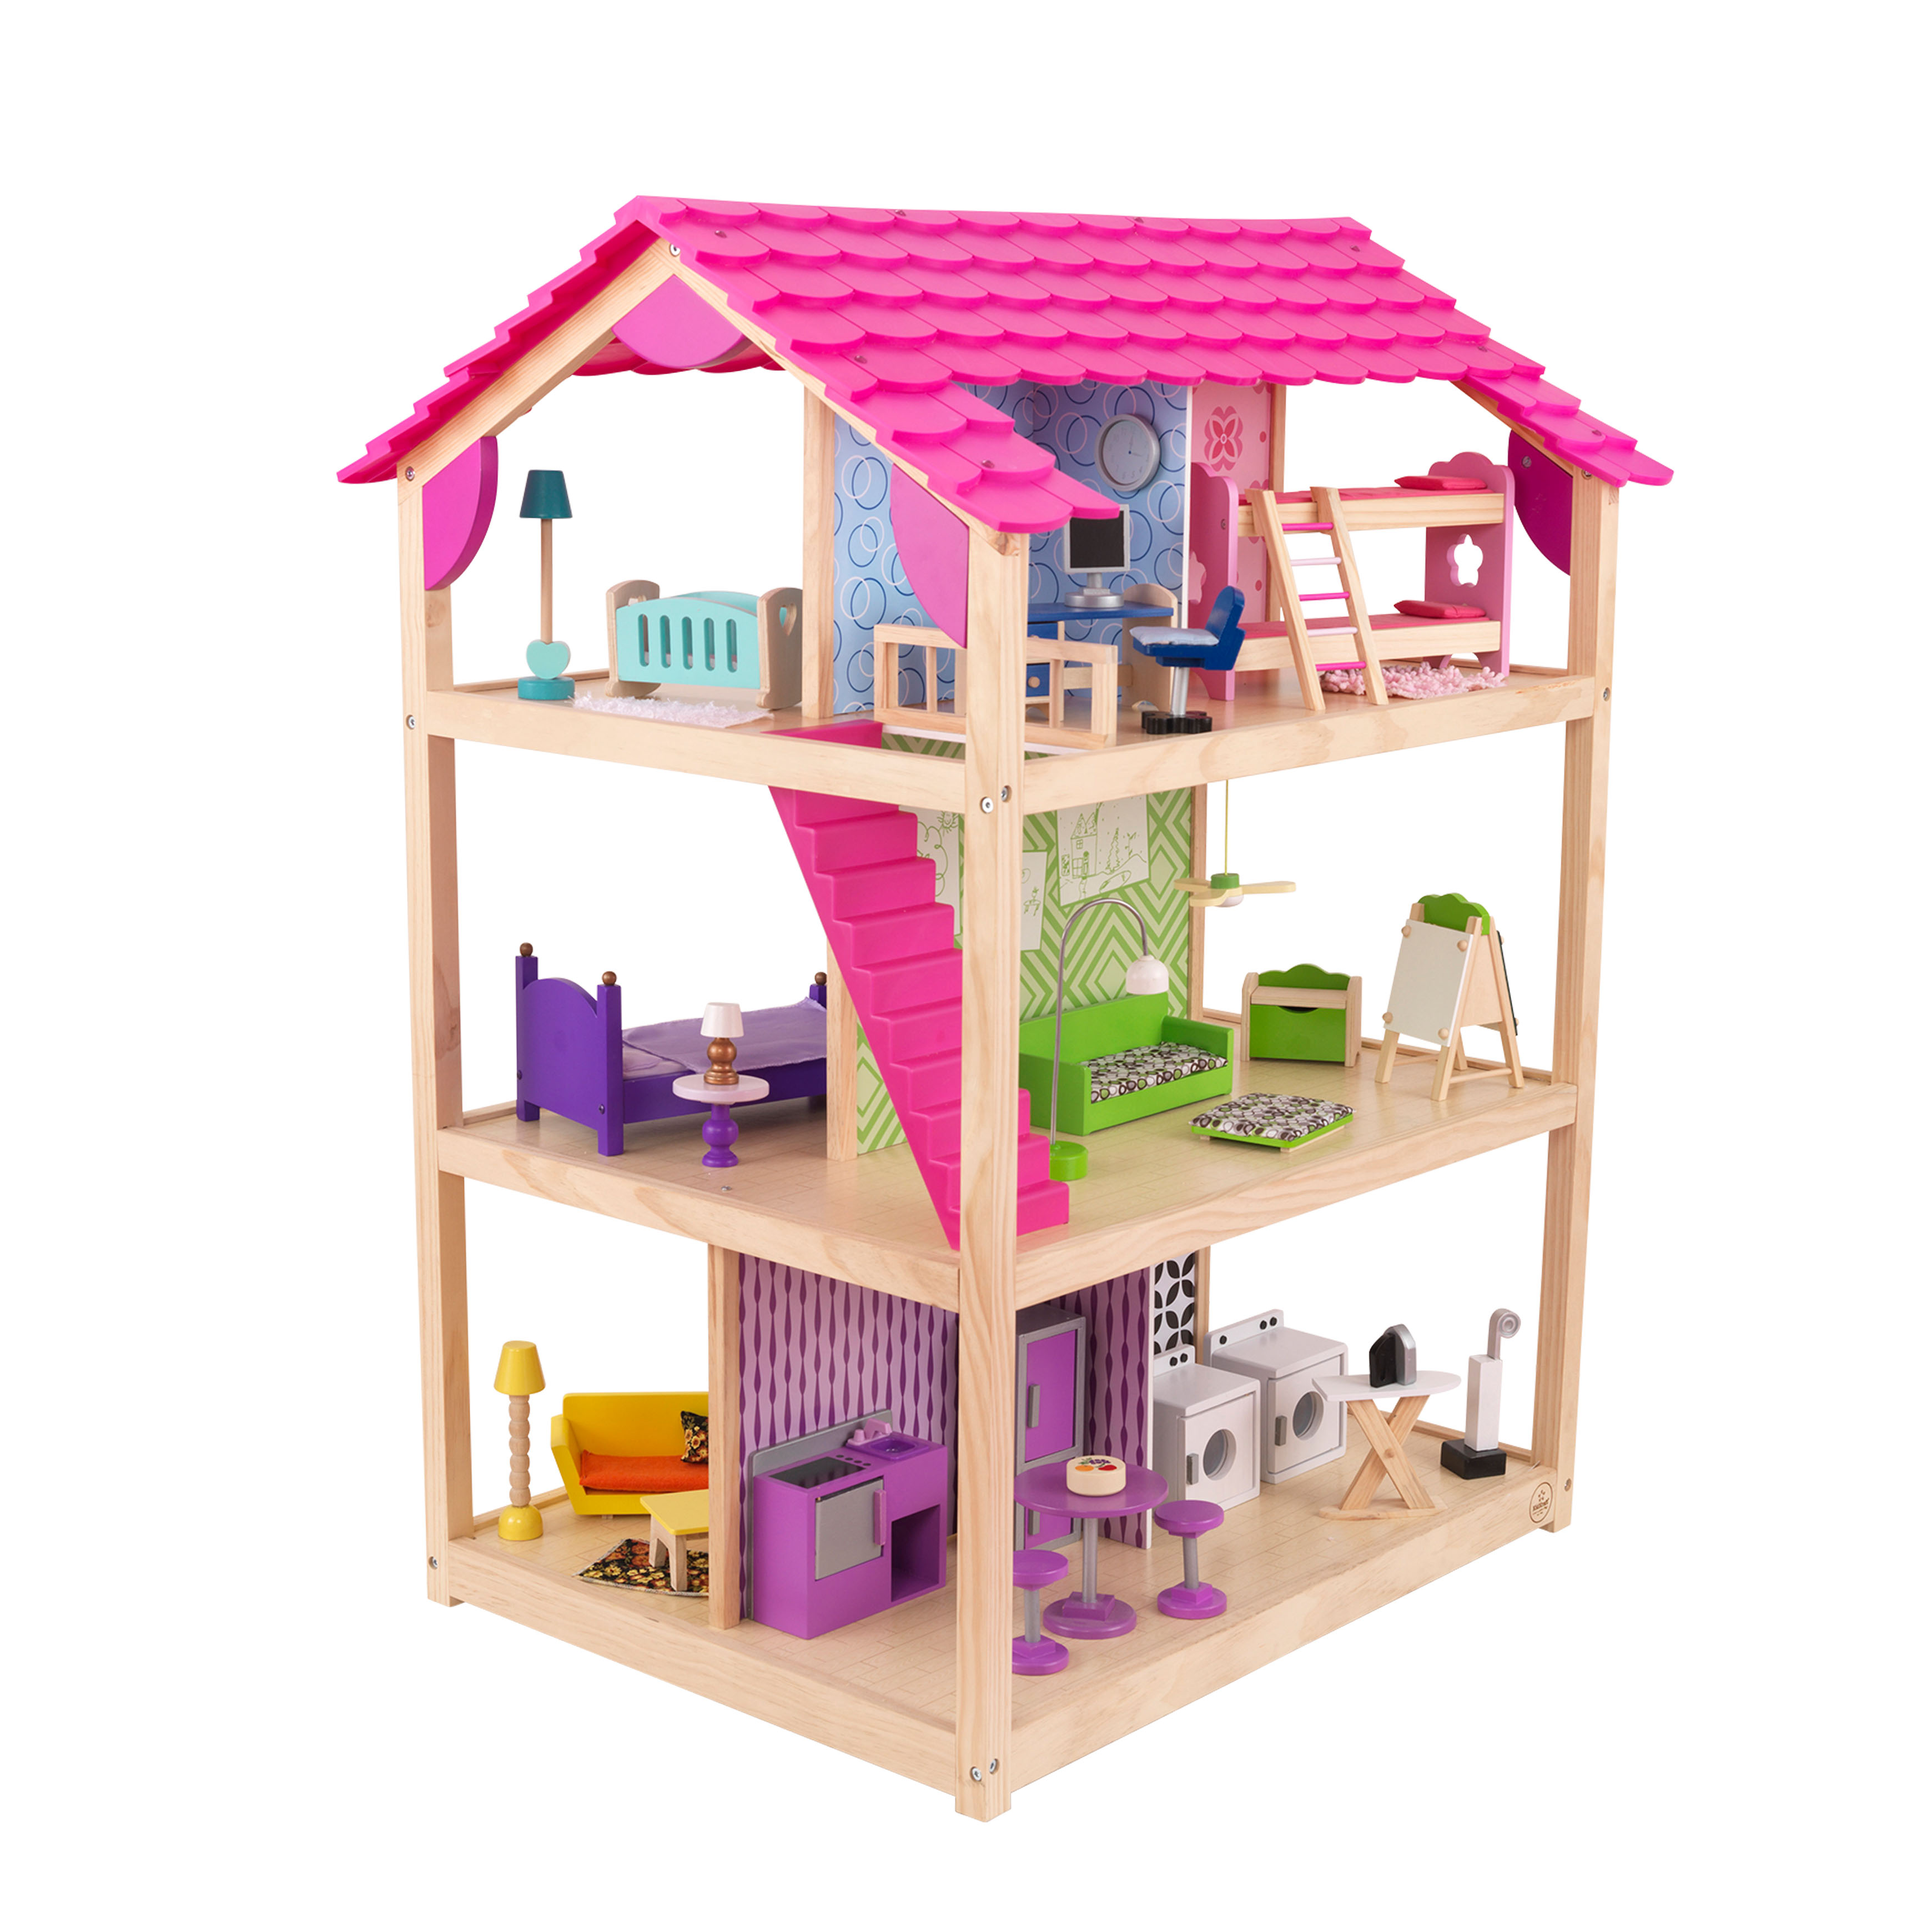 KidKraft So Chic Dollhouse with 46 Accessories by KidKraft